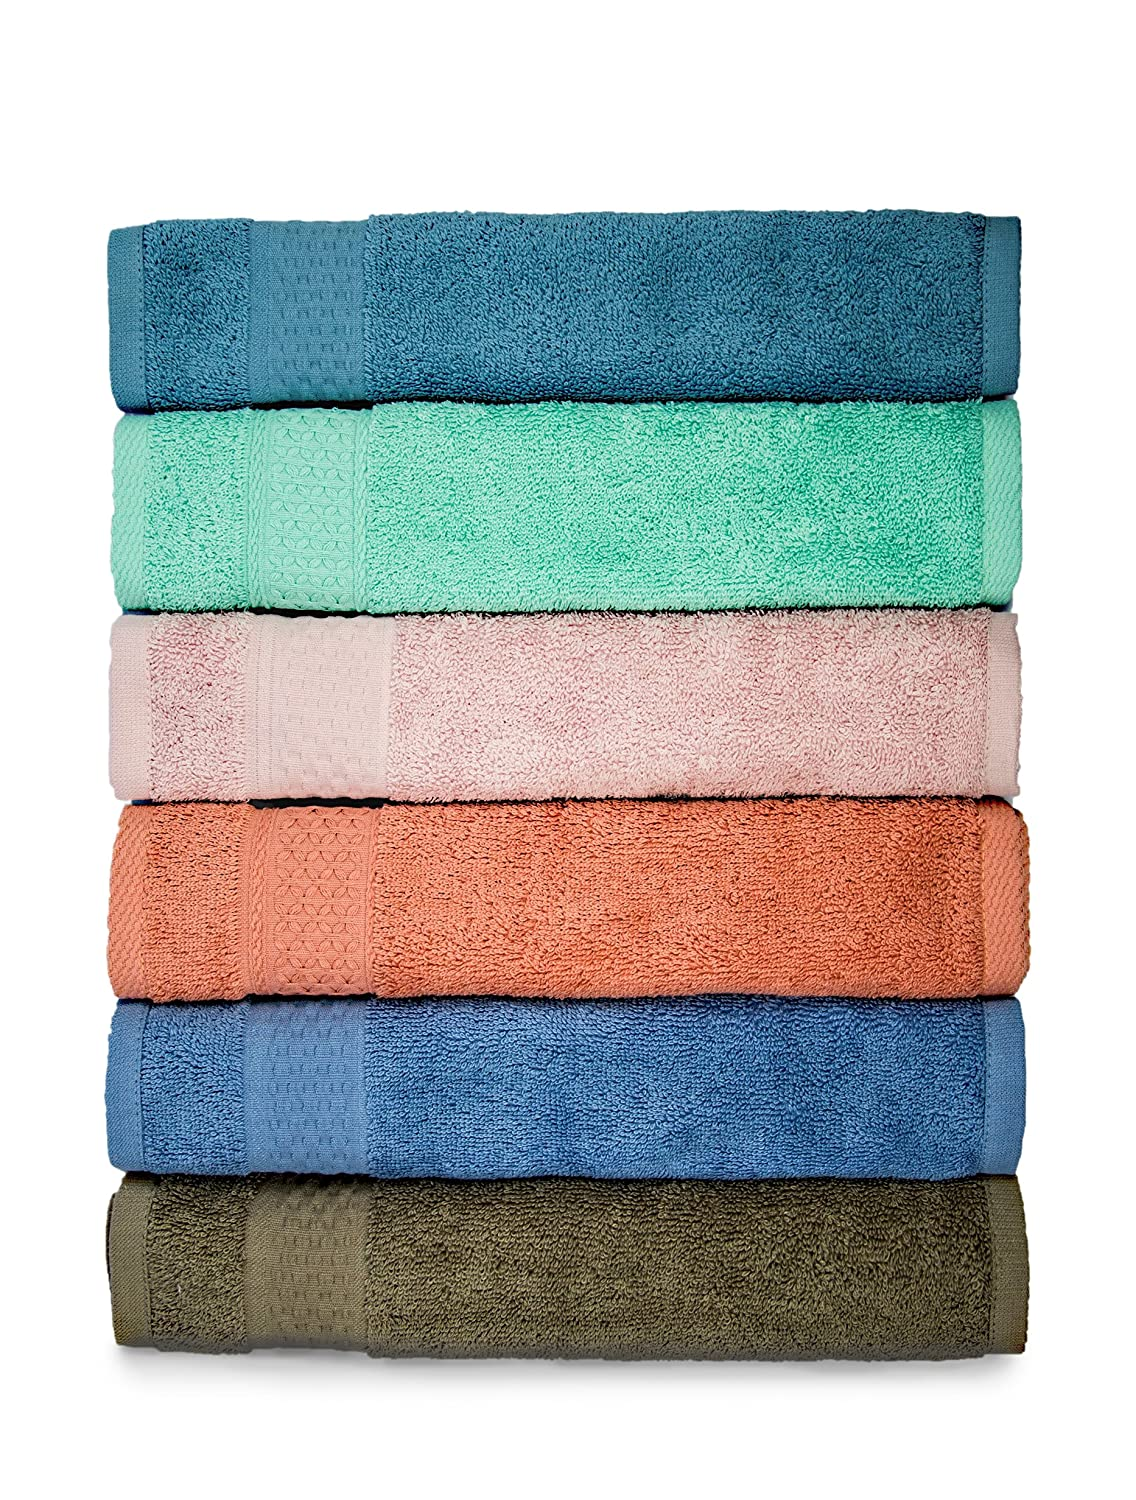 Cleanbear Cotton Bath Washcloths, 6 Pieces, 6 Colors. (Greengage,Baby pink,Brown,Blue grey,Rust,Volet)